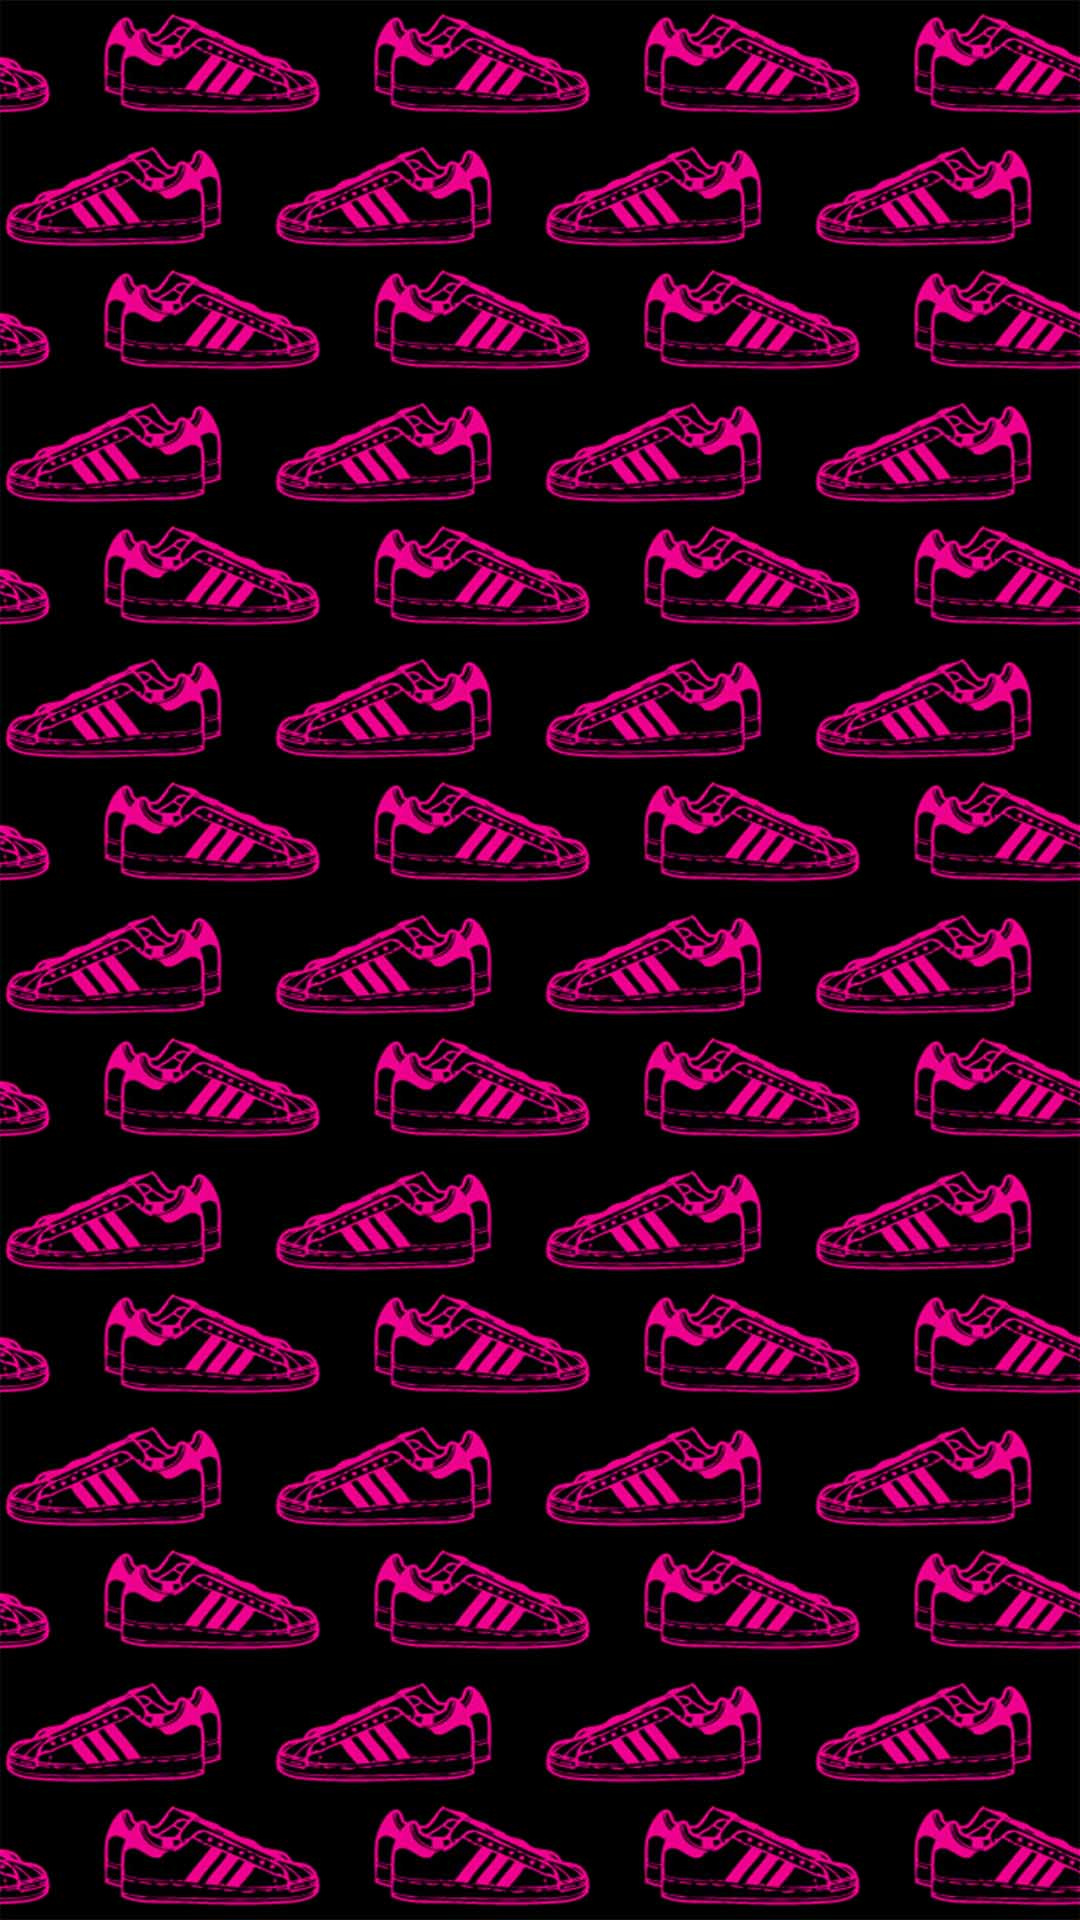 iPhone wallpaper adidas shoes 3Wallpapers : notre sélection de fonds d'écran du 19/04/2018